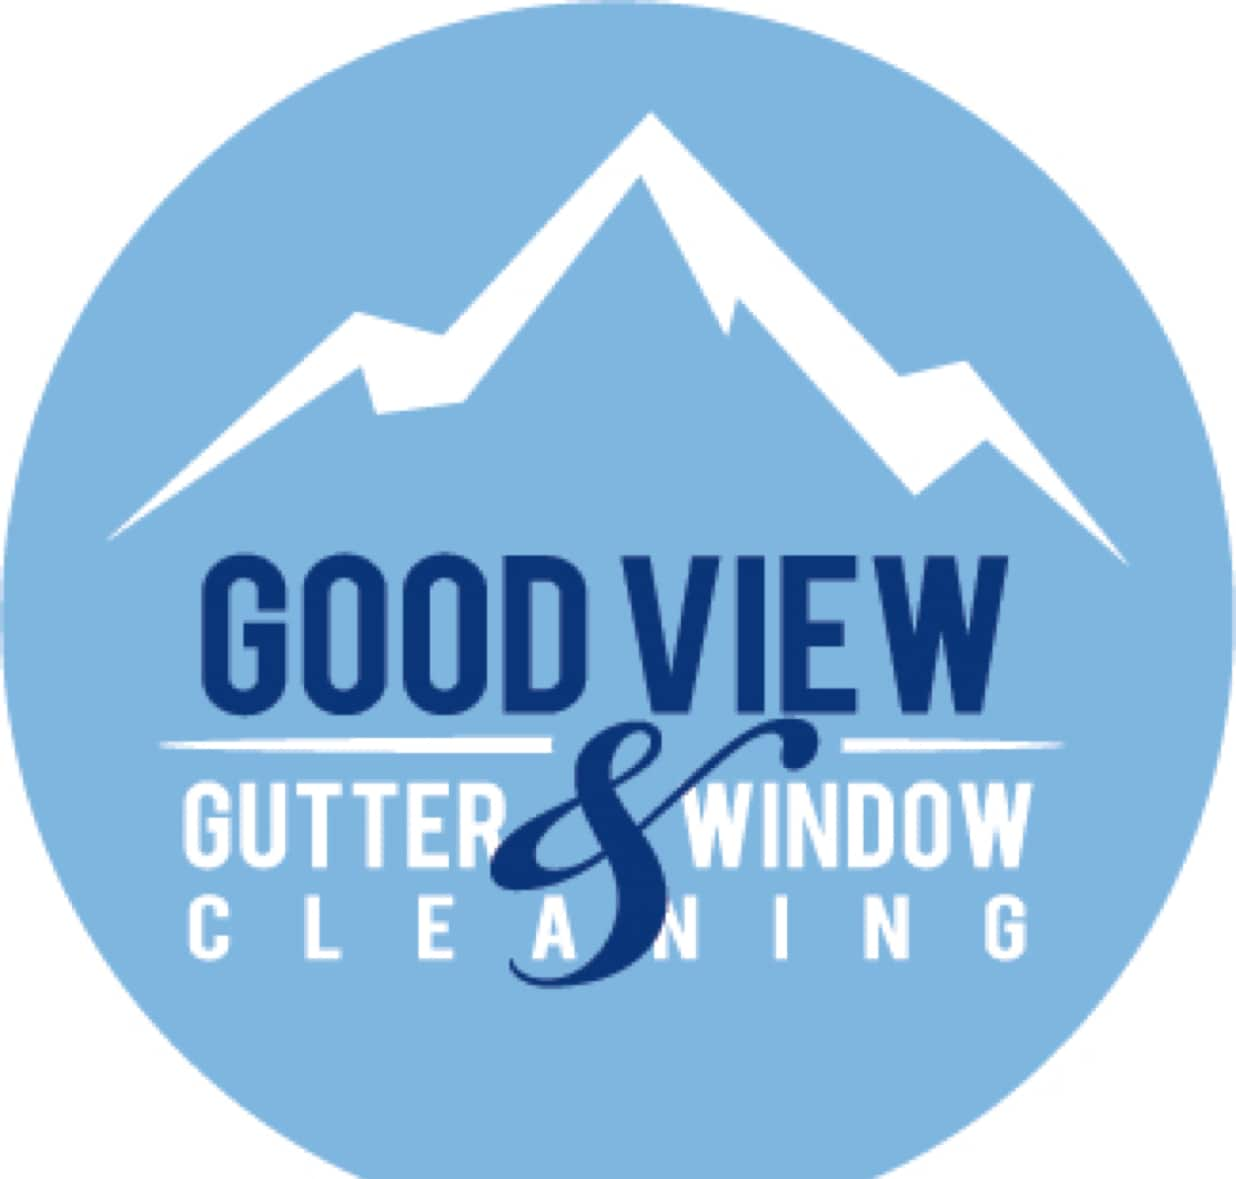 Good View Gutter and Window Cleaning LLC